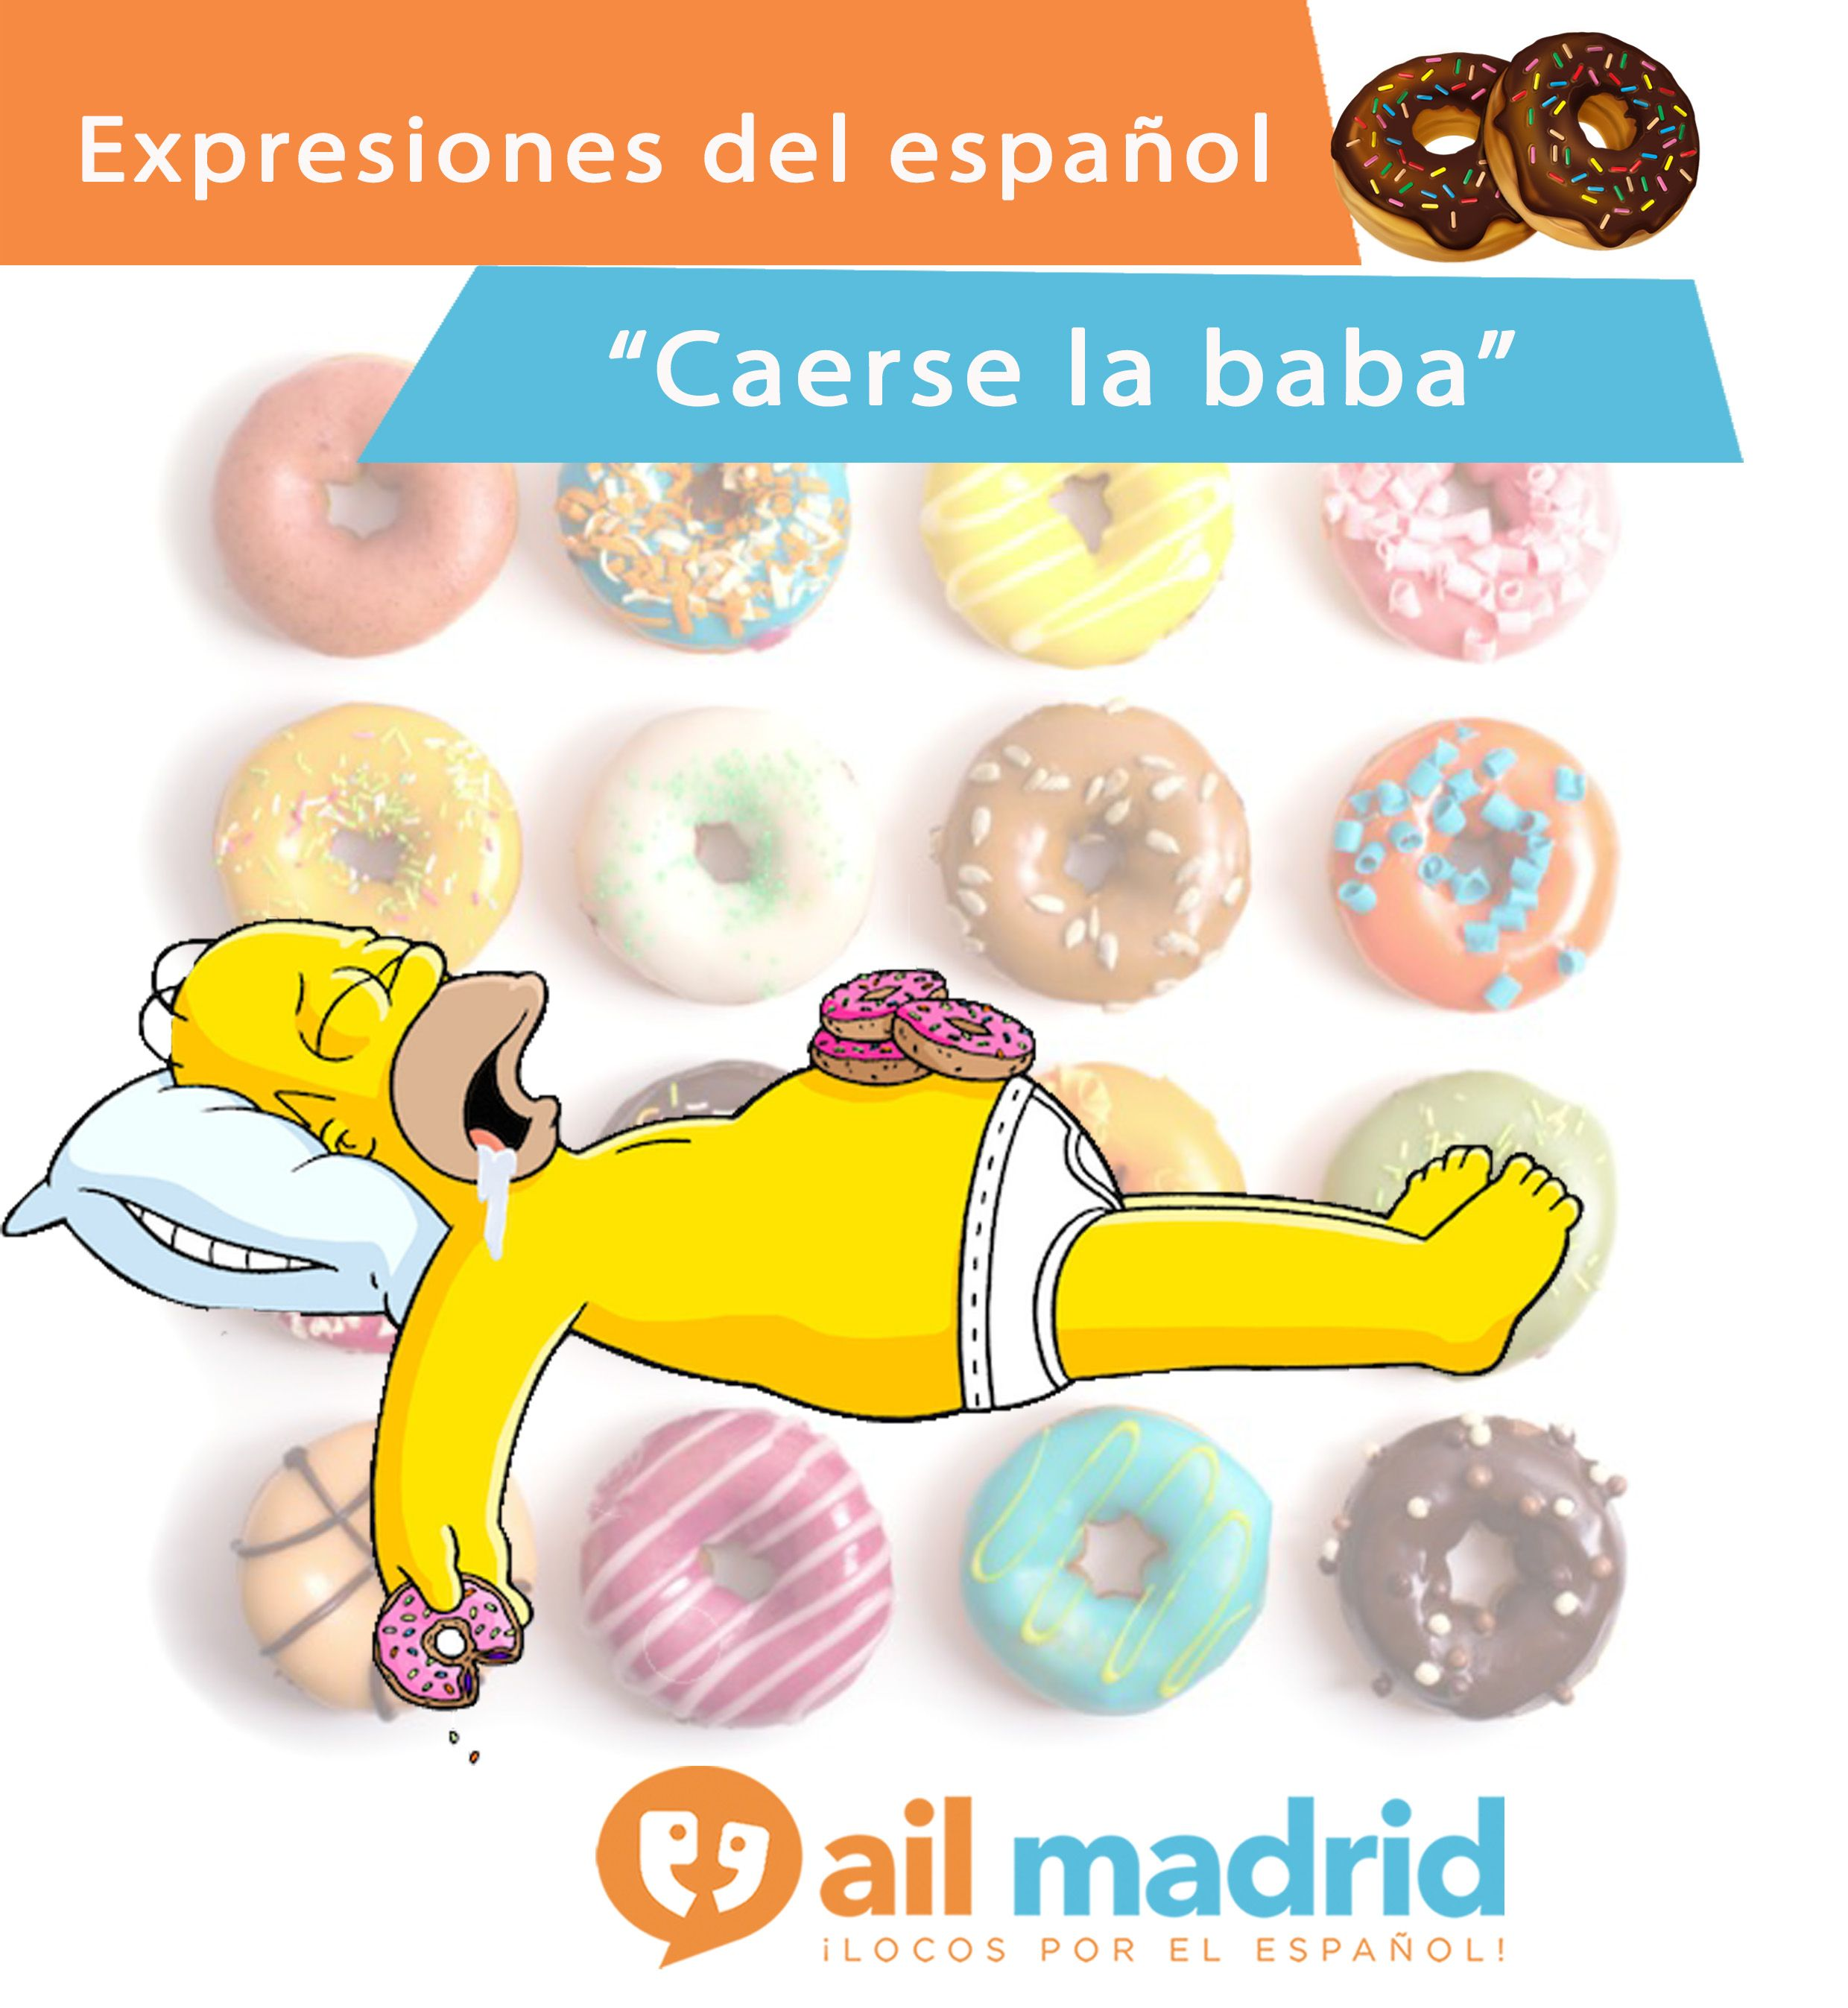 Funny Spanish Expression When You Drool Over Something